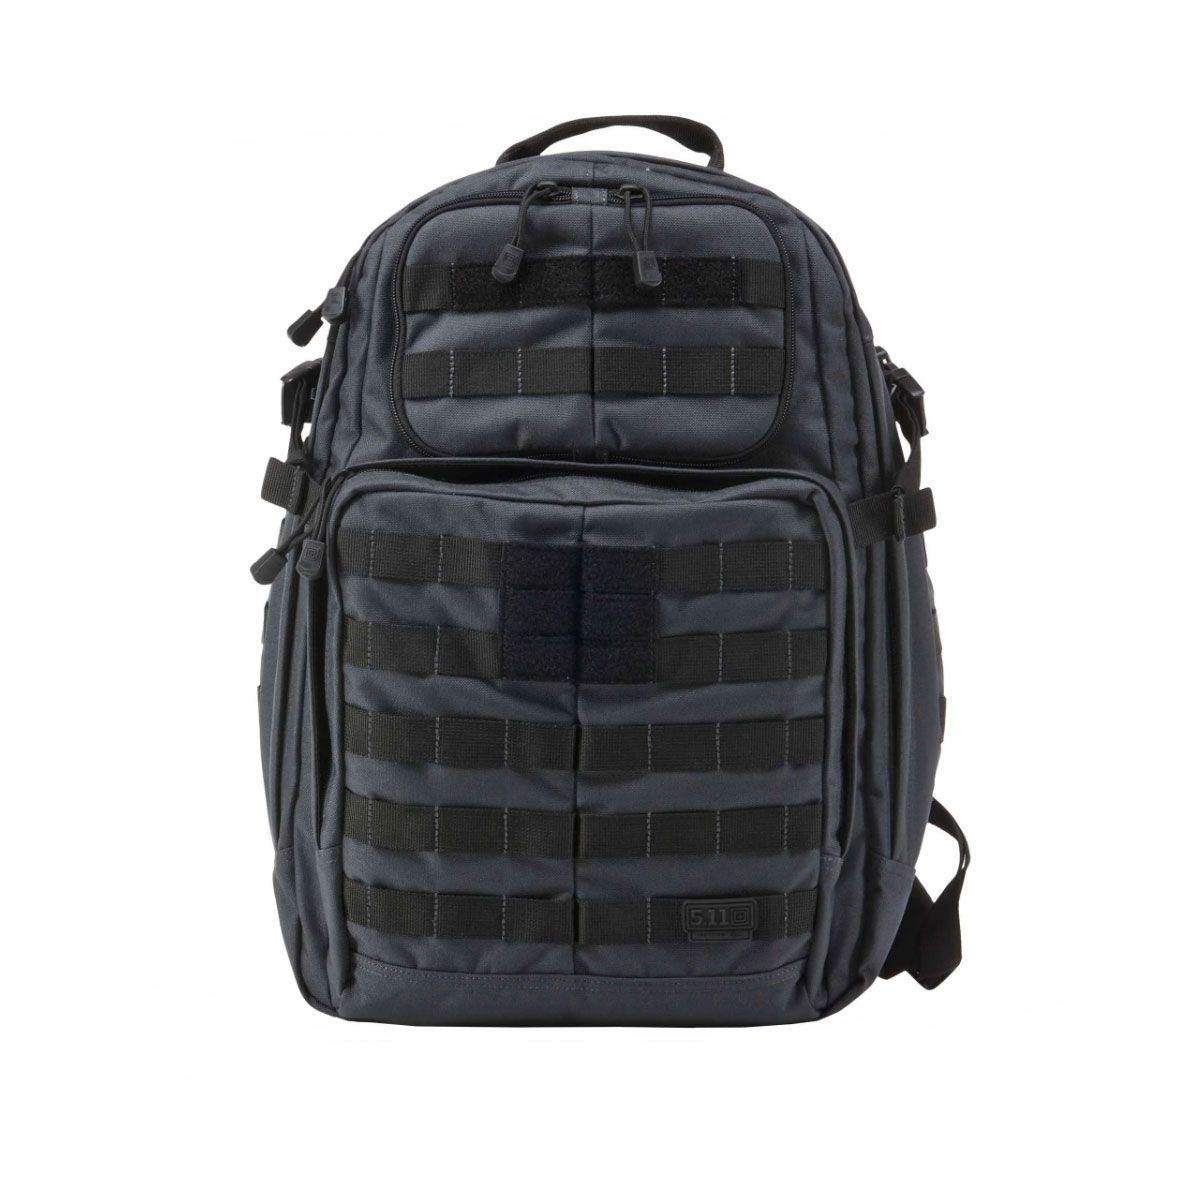 Mochila Tatica 5.11 Tactical Rush 24 BackPack Double Tap